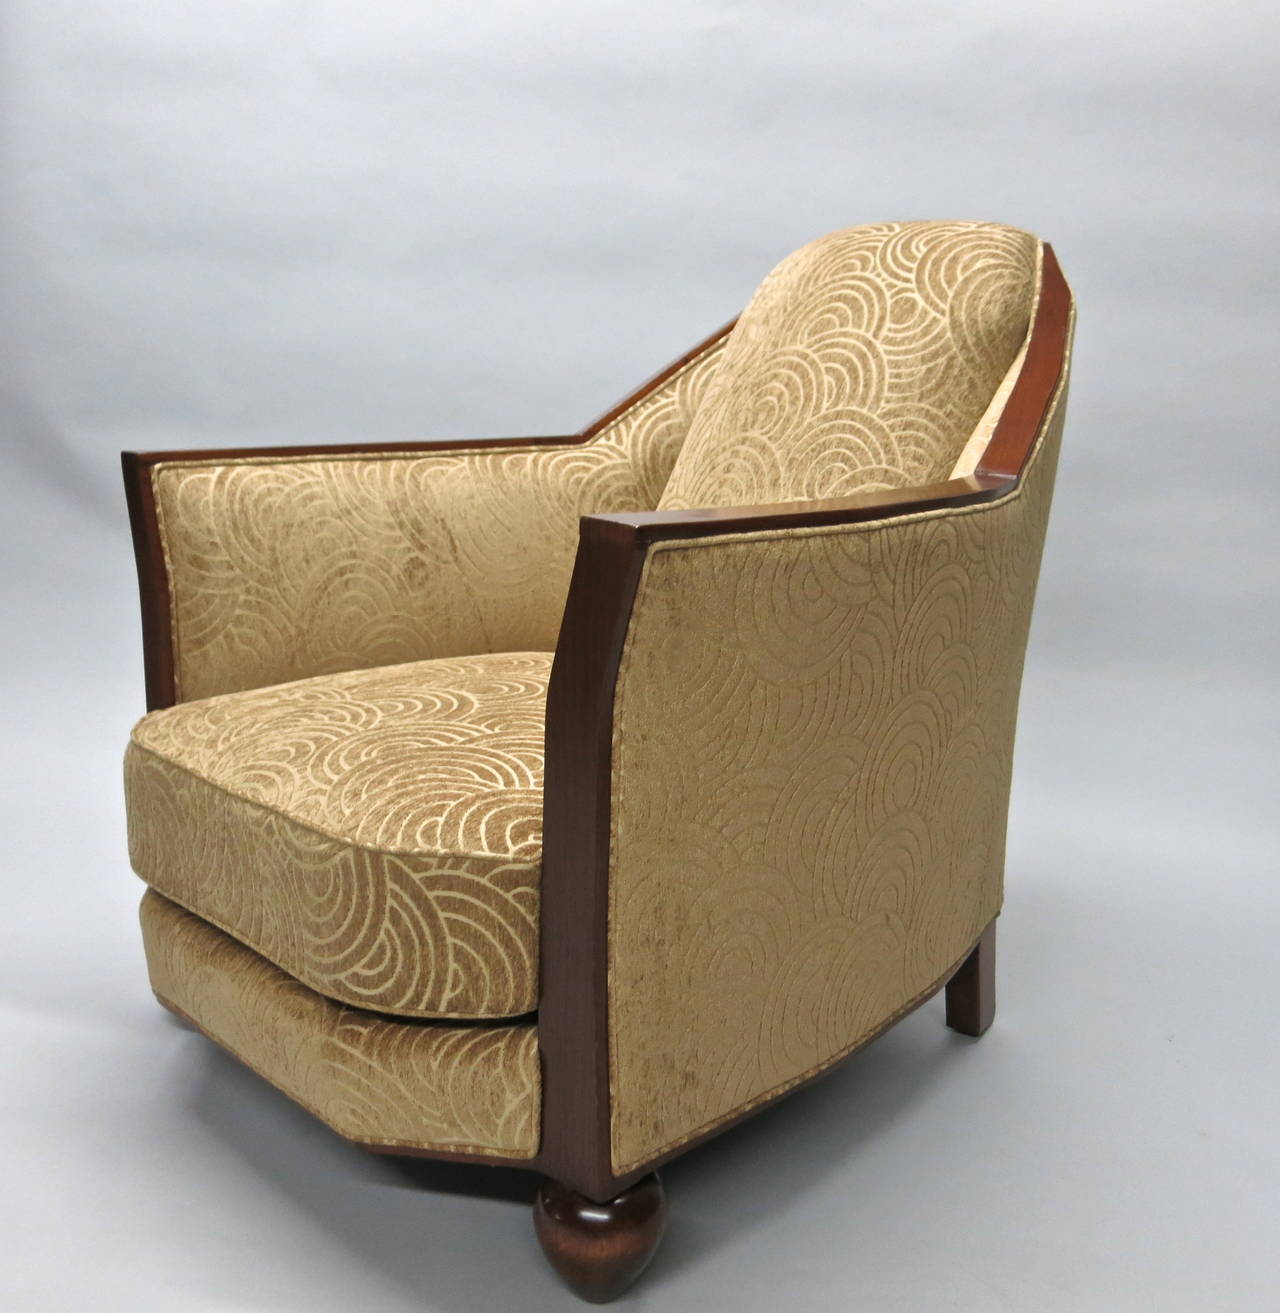 art deco chair attributed to pierre chareau circa 1930 made in france for sale at 1stdibs. Black Bedroom Furniture Sets. Home Design Ideas